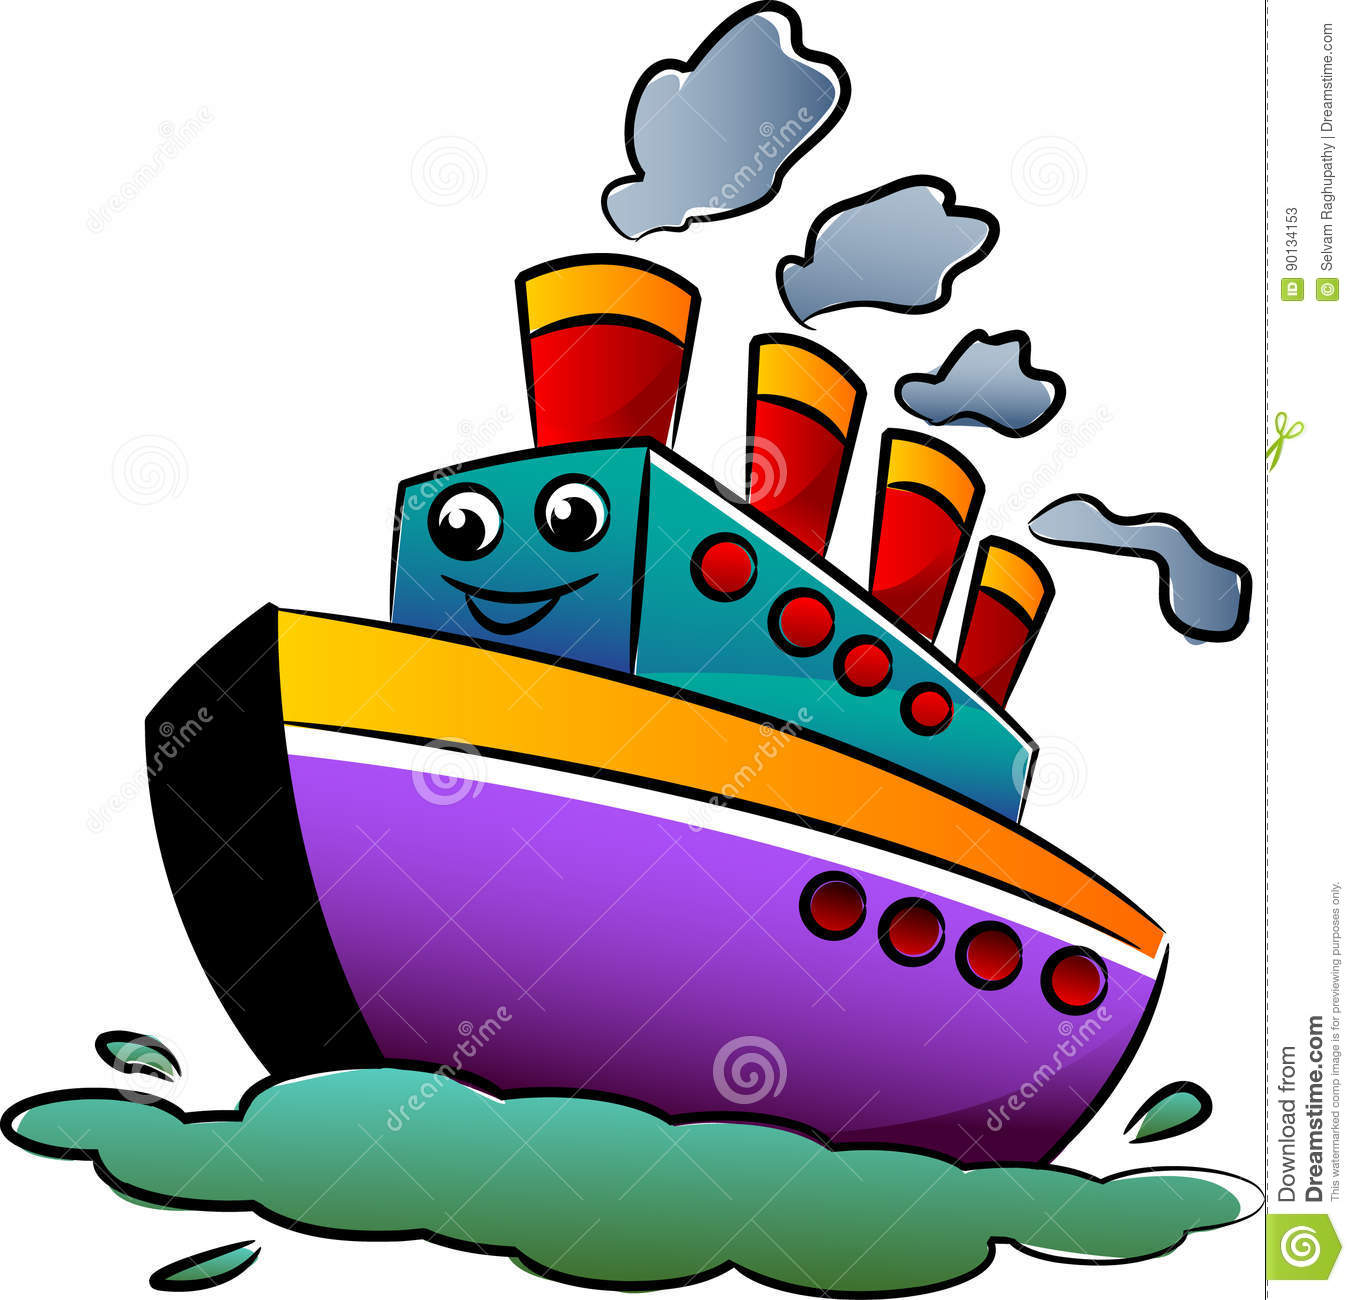 ship cartoon stock illustrations 63 936 ship cartoon stock illustrations vectors clipart dreamstime dreamstime com